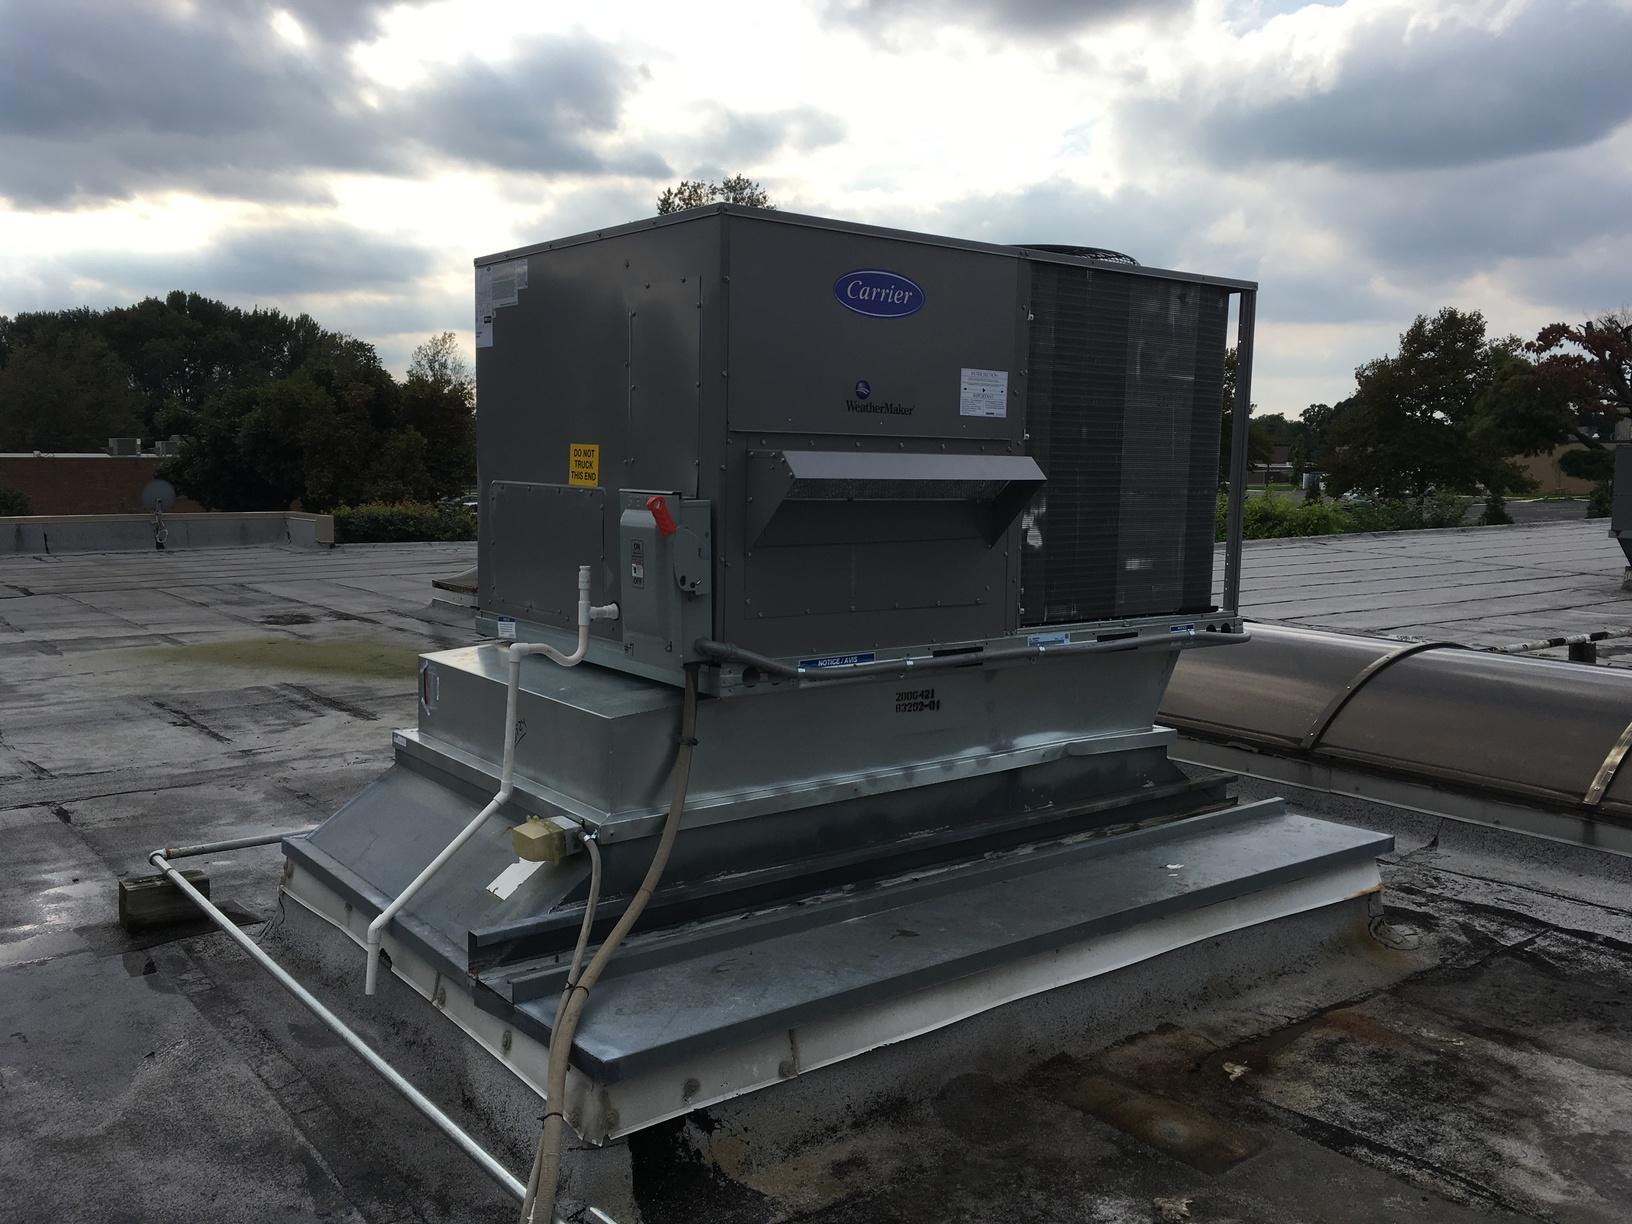 Commercial Rooftop Air Conditioning Replacement - After Photo